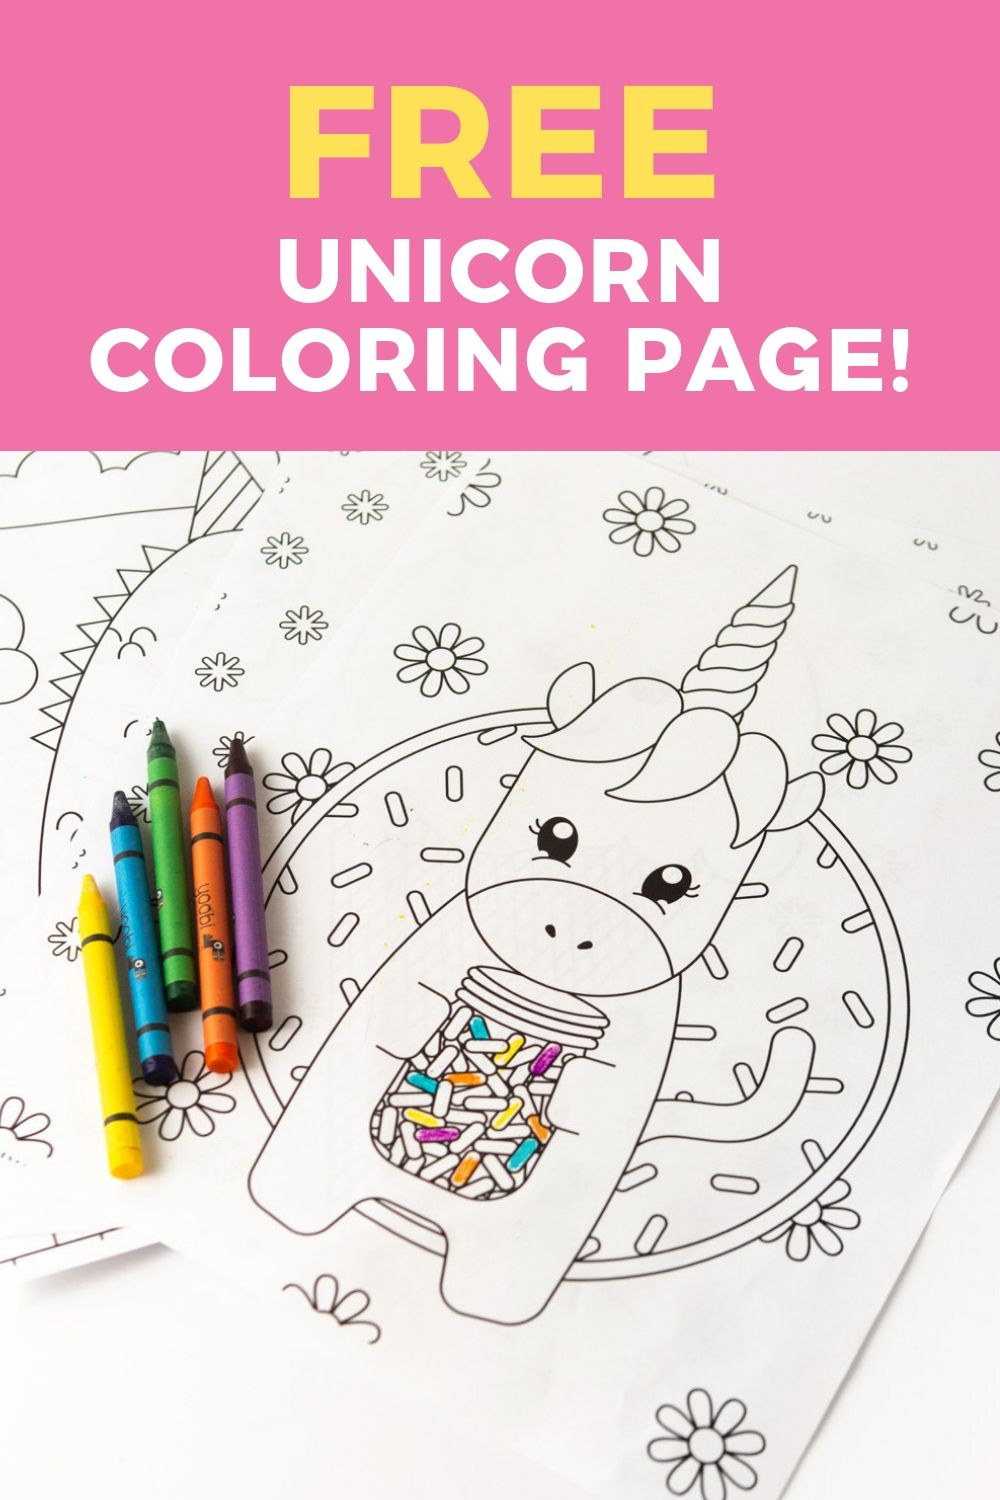 Download This Free Unicorn Coloring Page For A Fun Rainy Day Or Birthday Party Activity Unicorn Coloring Pages Dinosaur Coloring Pages Printable Coloring Book